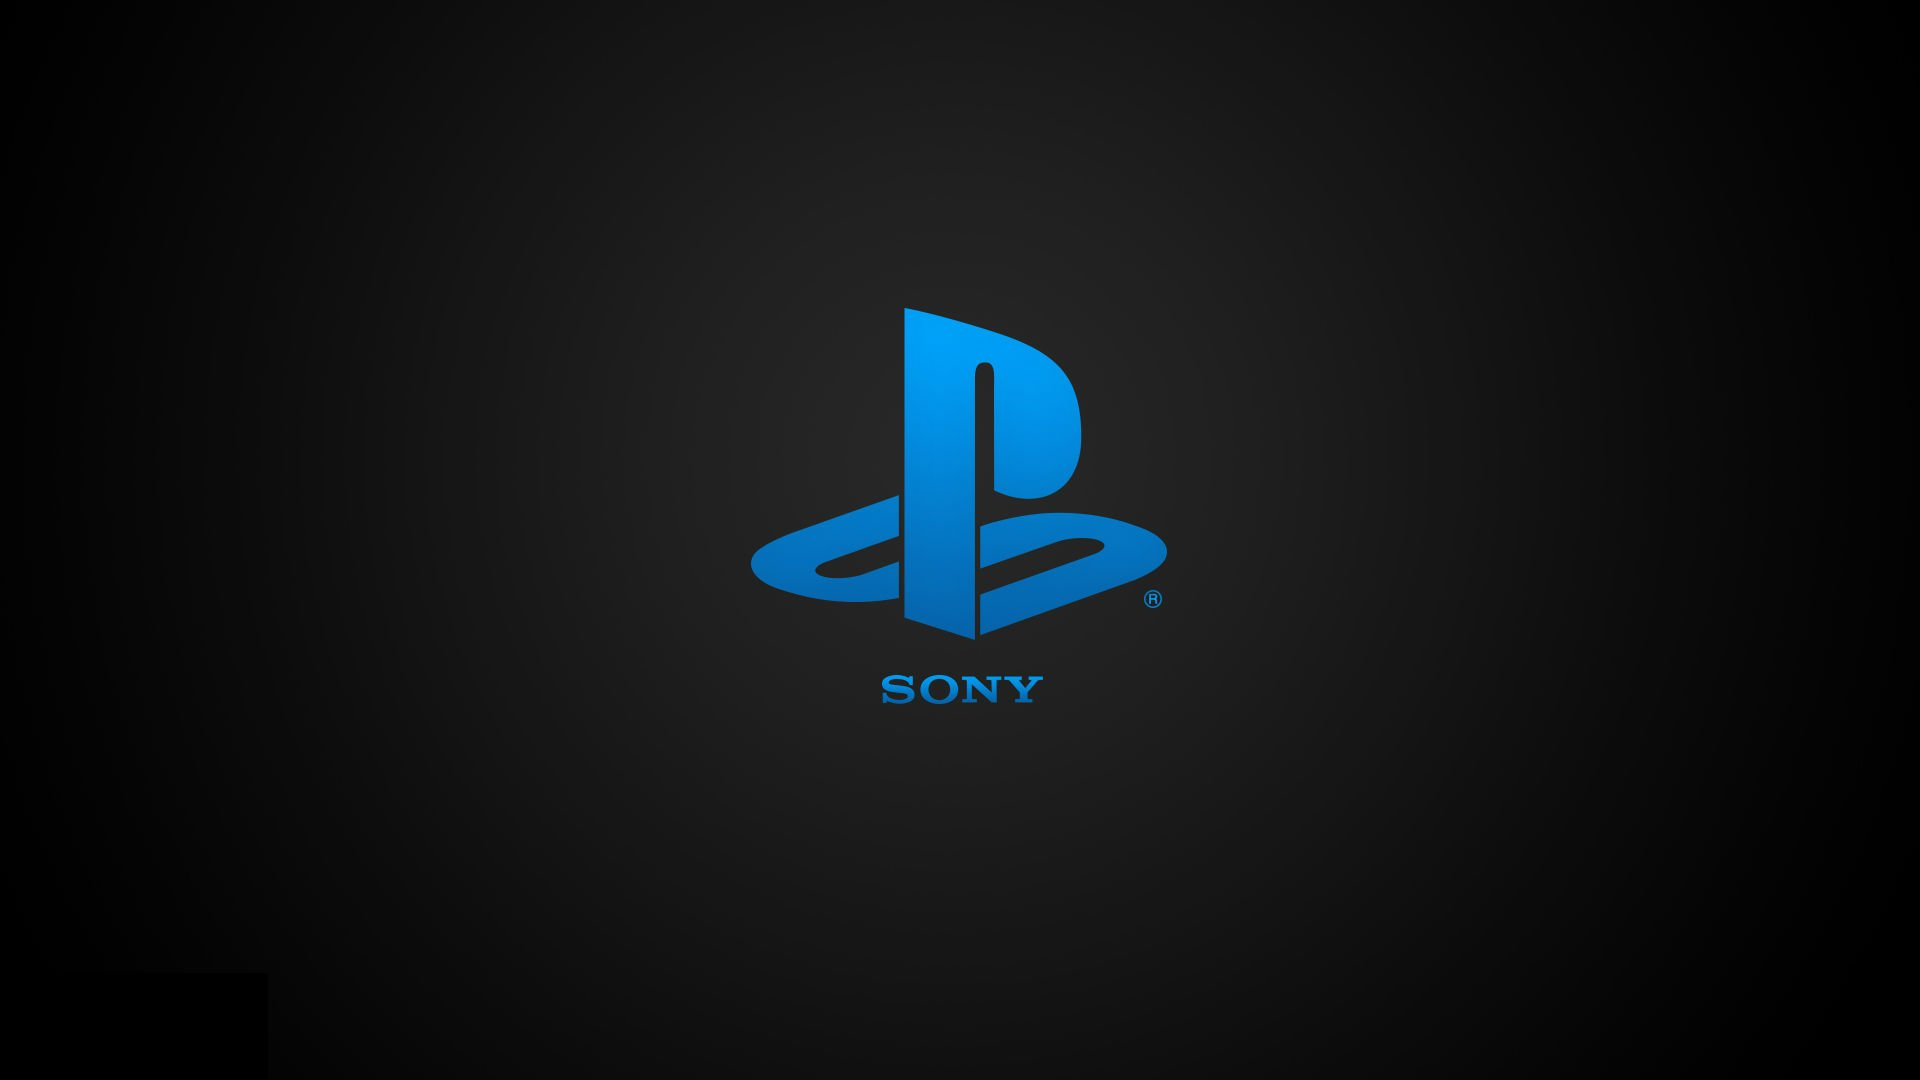 PS4 Playstation videogame system video game sony wallpaper ...